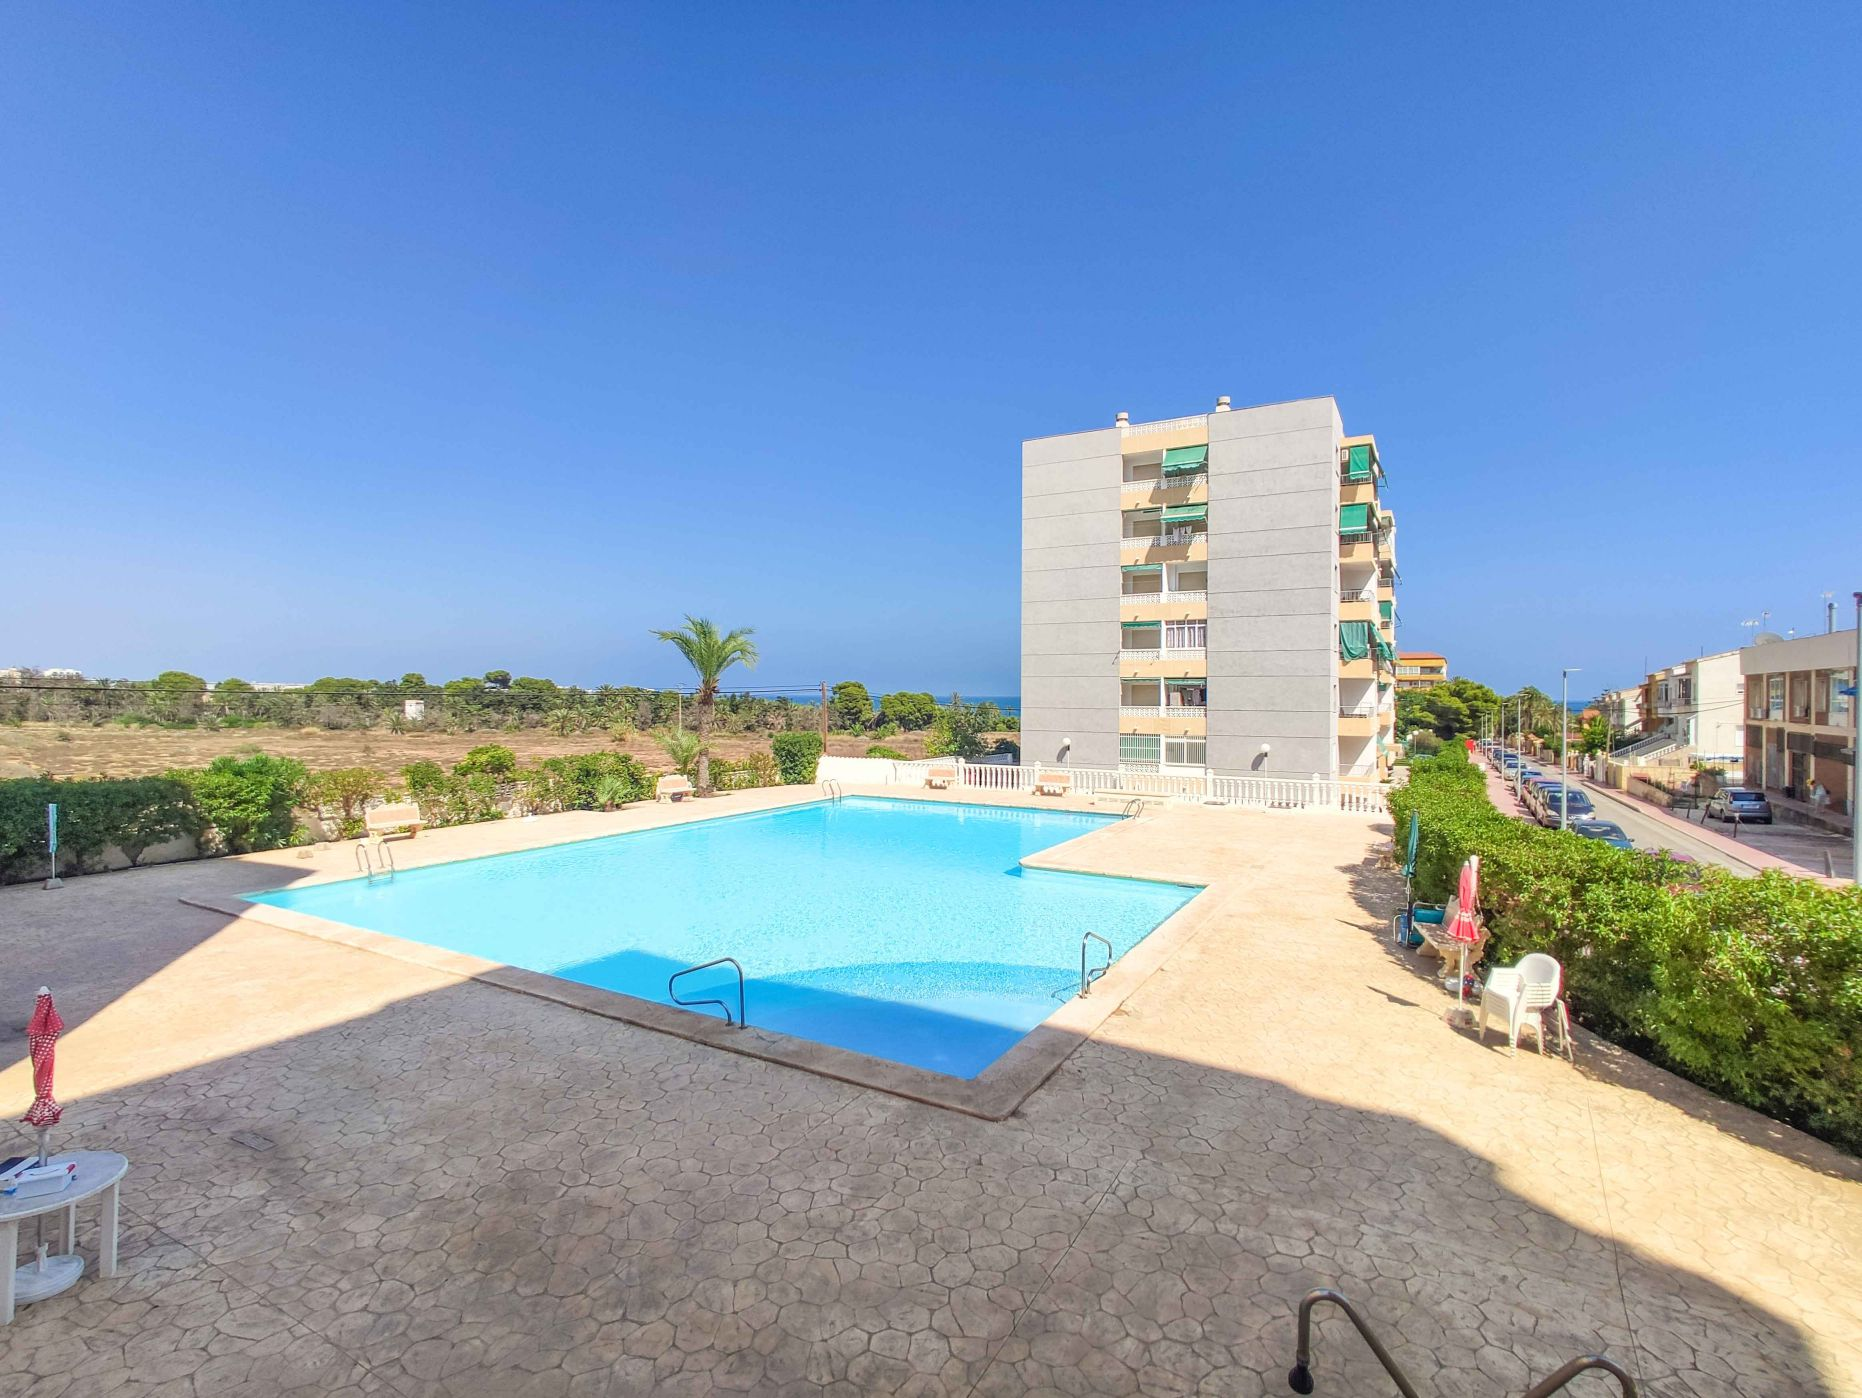 Apartment 2 Bedrooms with Sea Views For Sale in Punta Prima